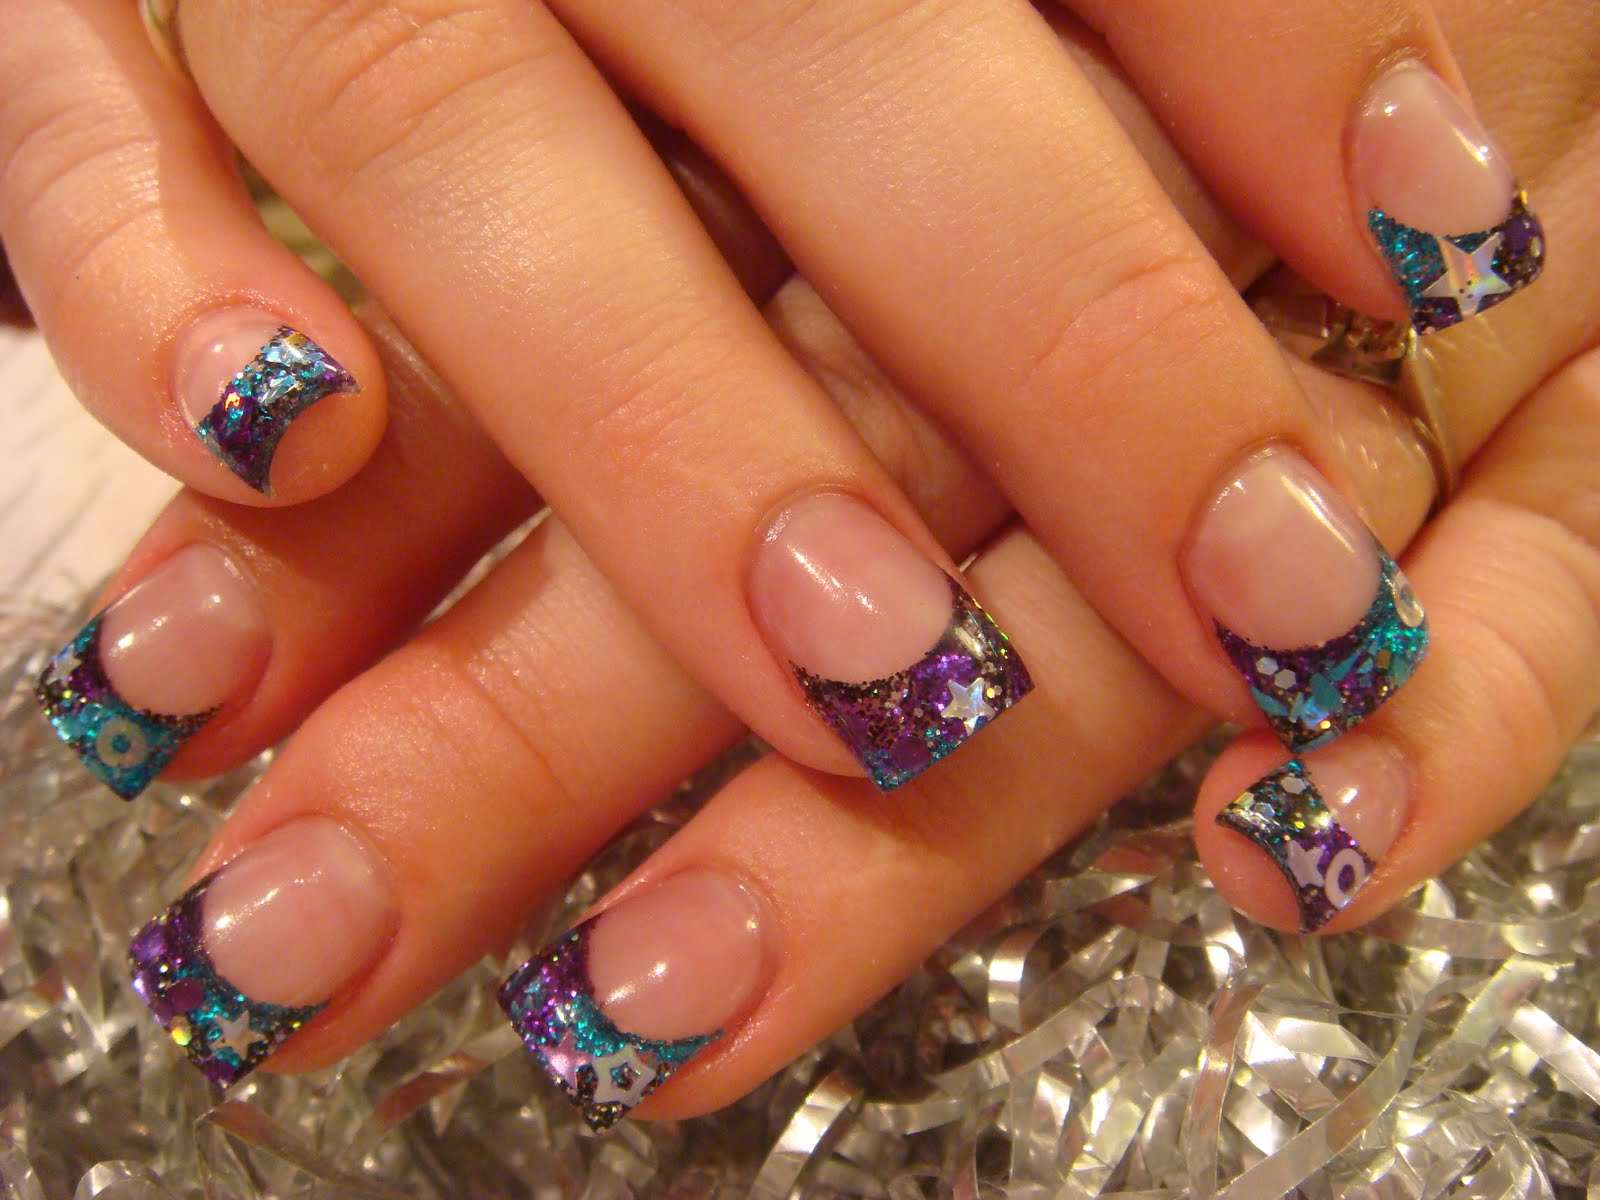 Crazy Nail Designs | Crazy Acrylic Nail Designs Nail Designs Hair Styles Tattoos And